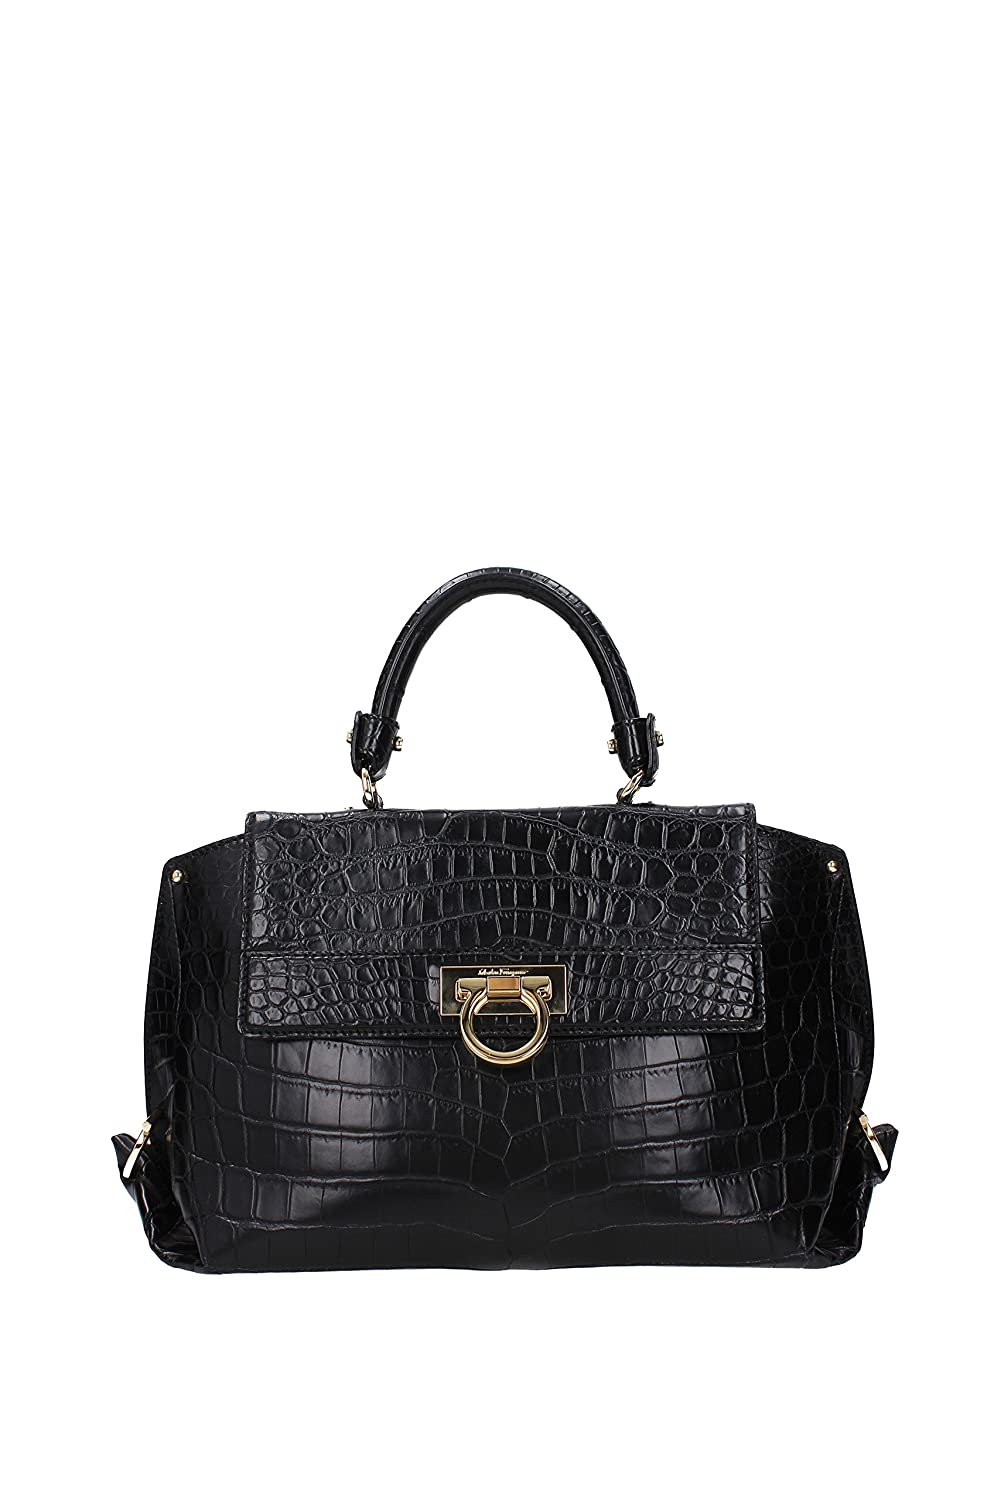 Handbags Salvatore Ferragamo sofia Women - Leather Crocodile  (21A9900565638)  Amazon.co.uk  Shoes   Bags 363fddaa38